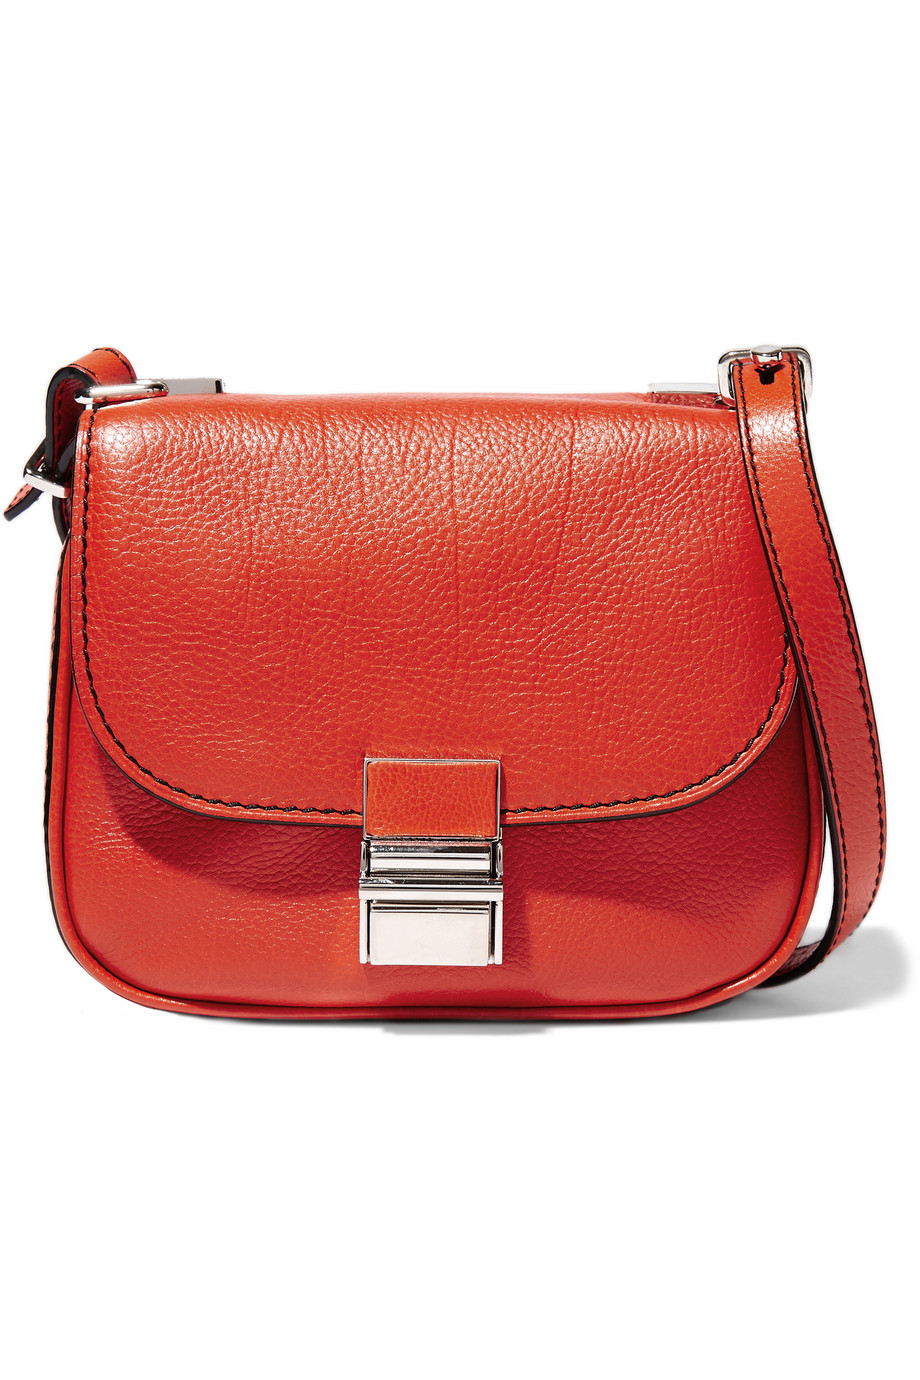 Proenza Schouler Kent Tiny Textured-Leather Shoulder Bag, Red, Women's